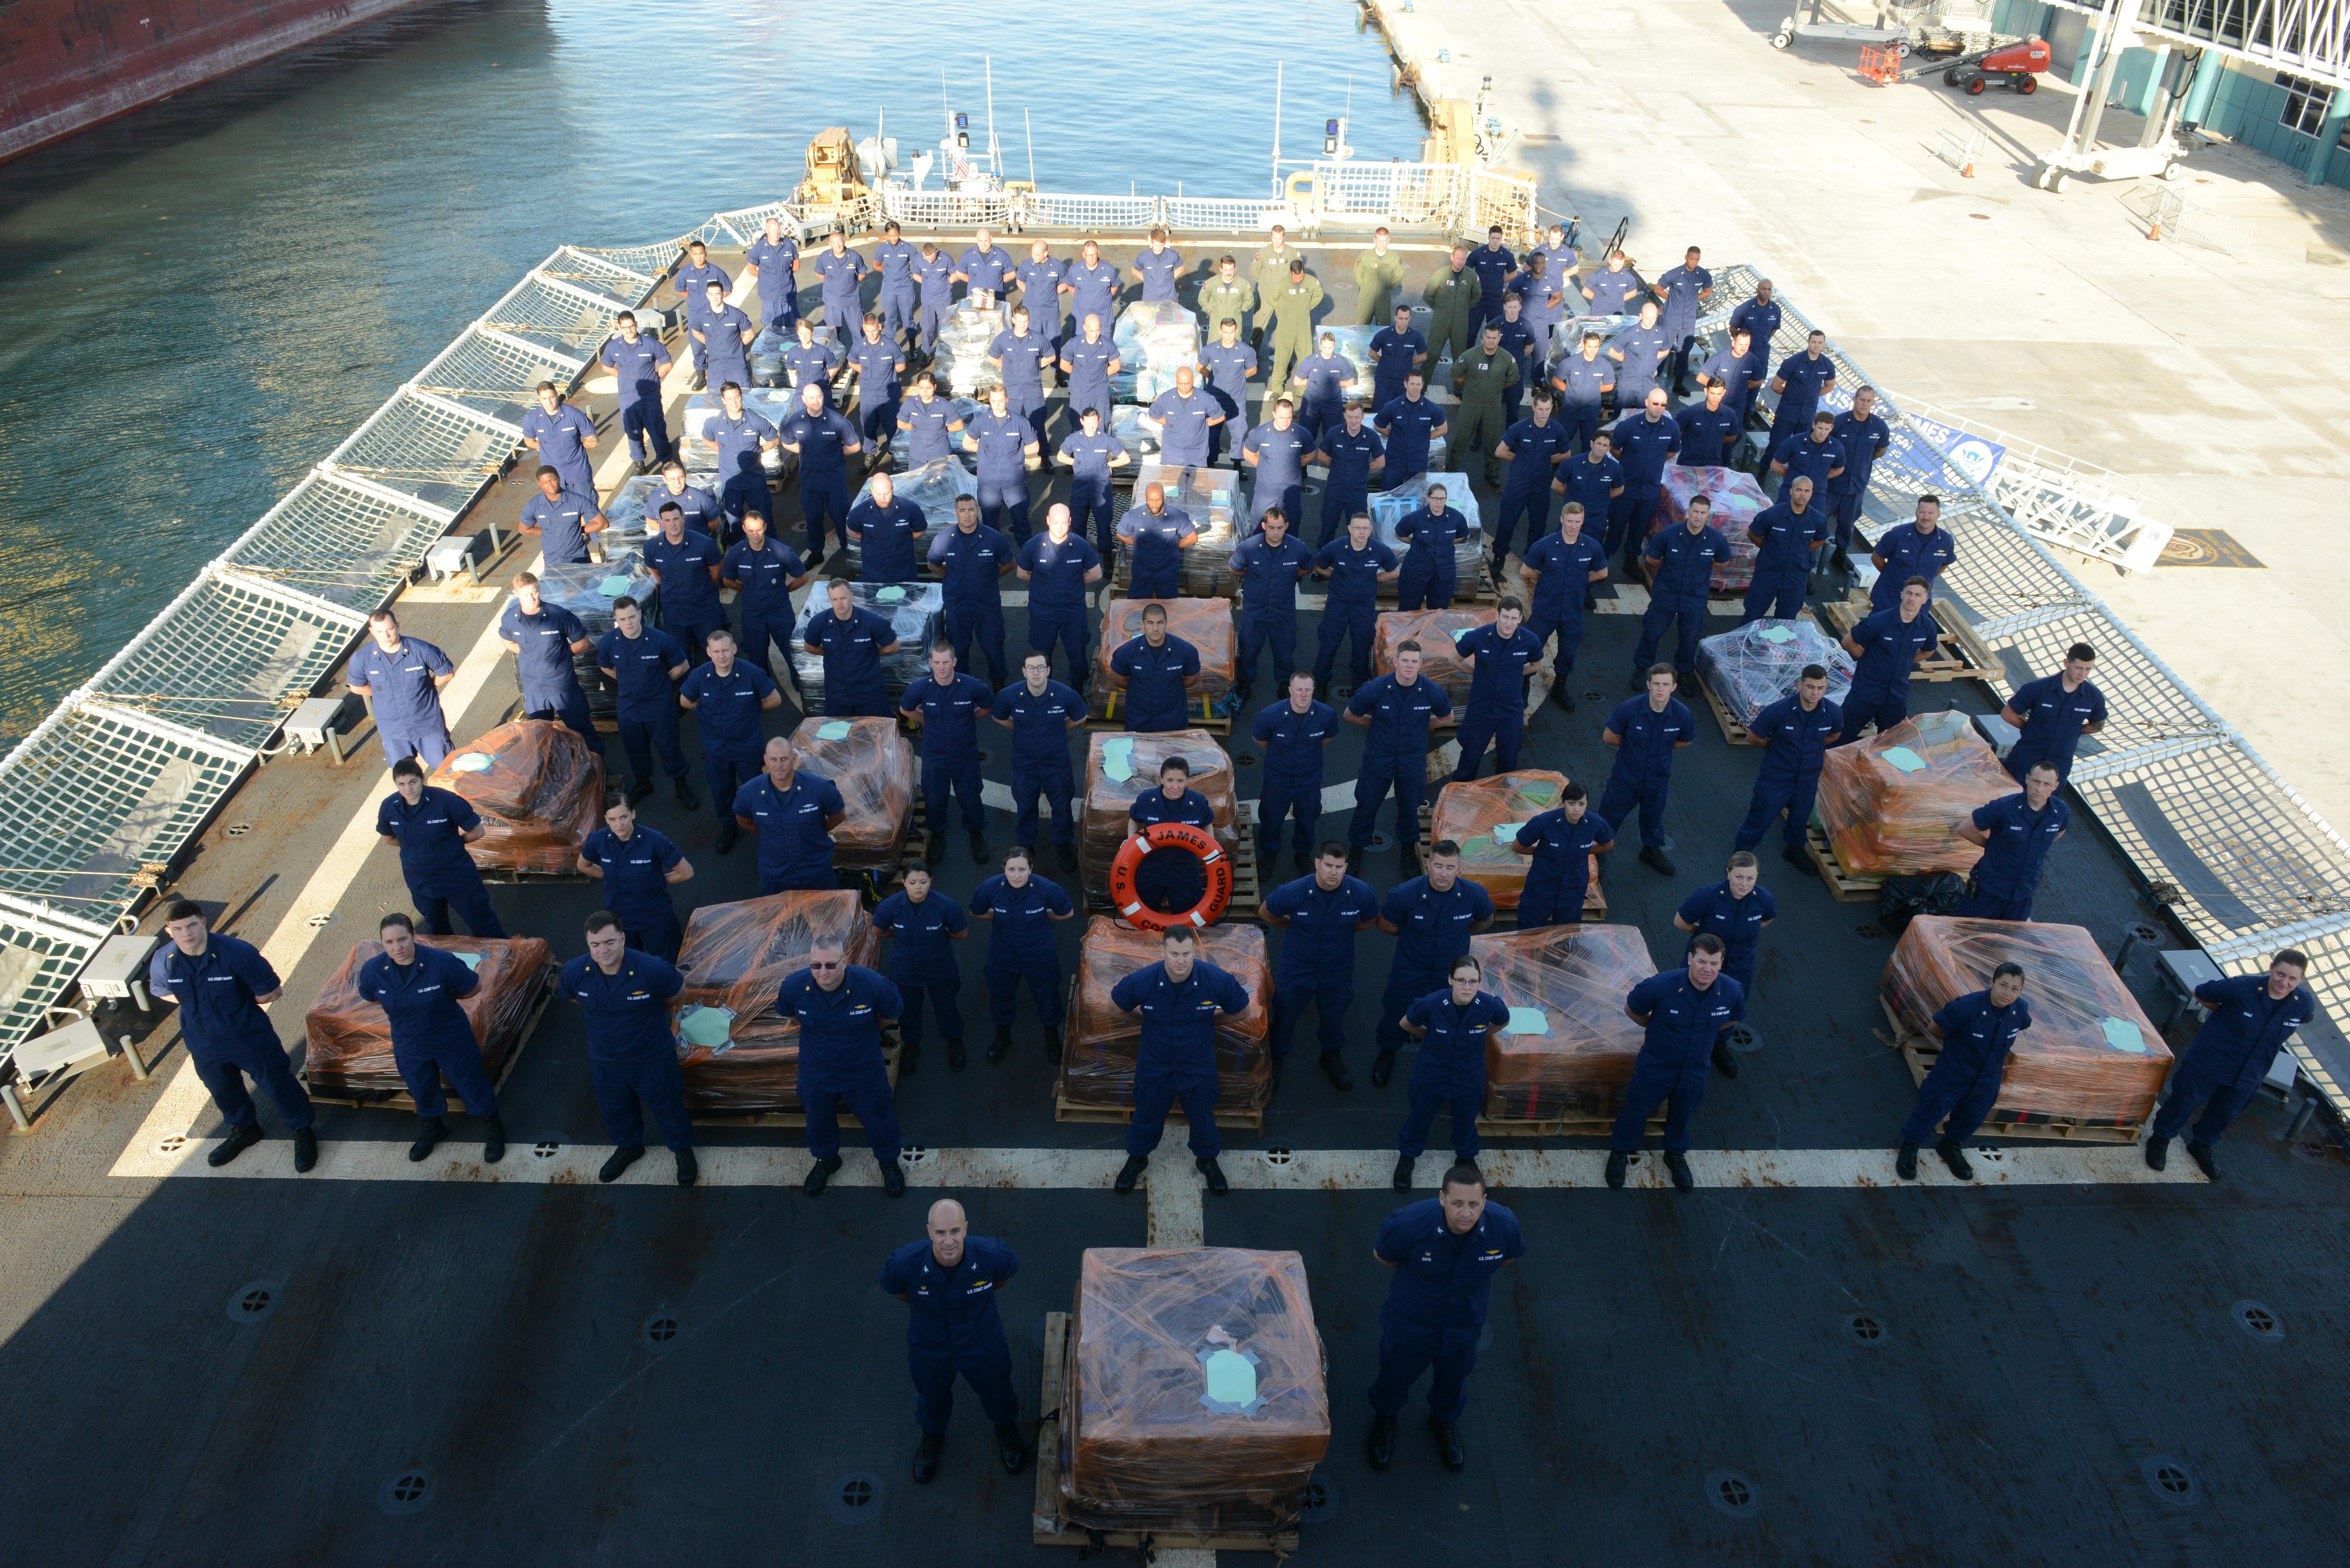 Coast Guard offloads approximately 16 tons of cocaine in